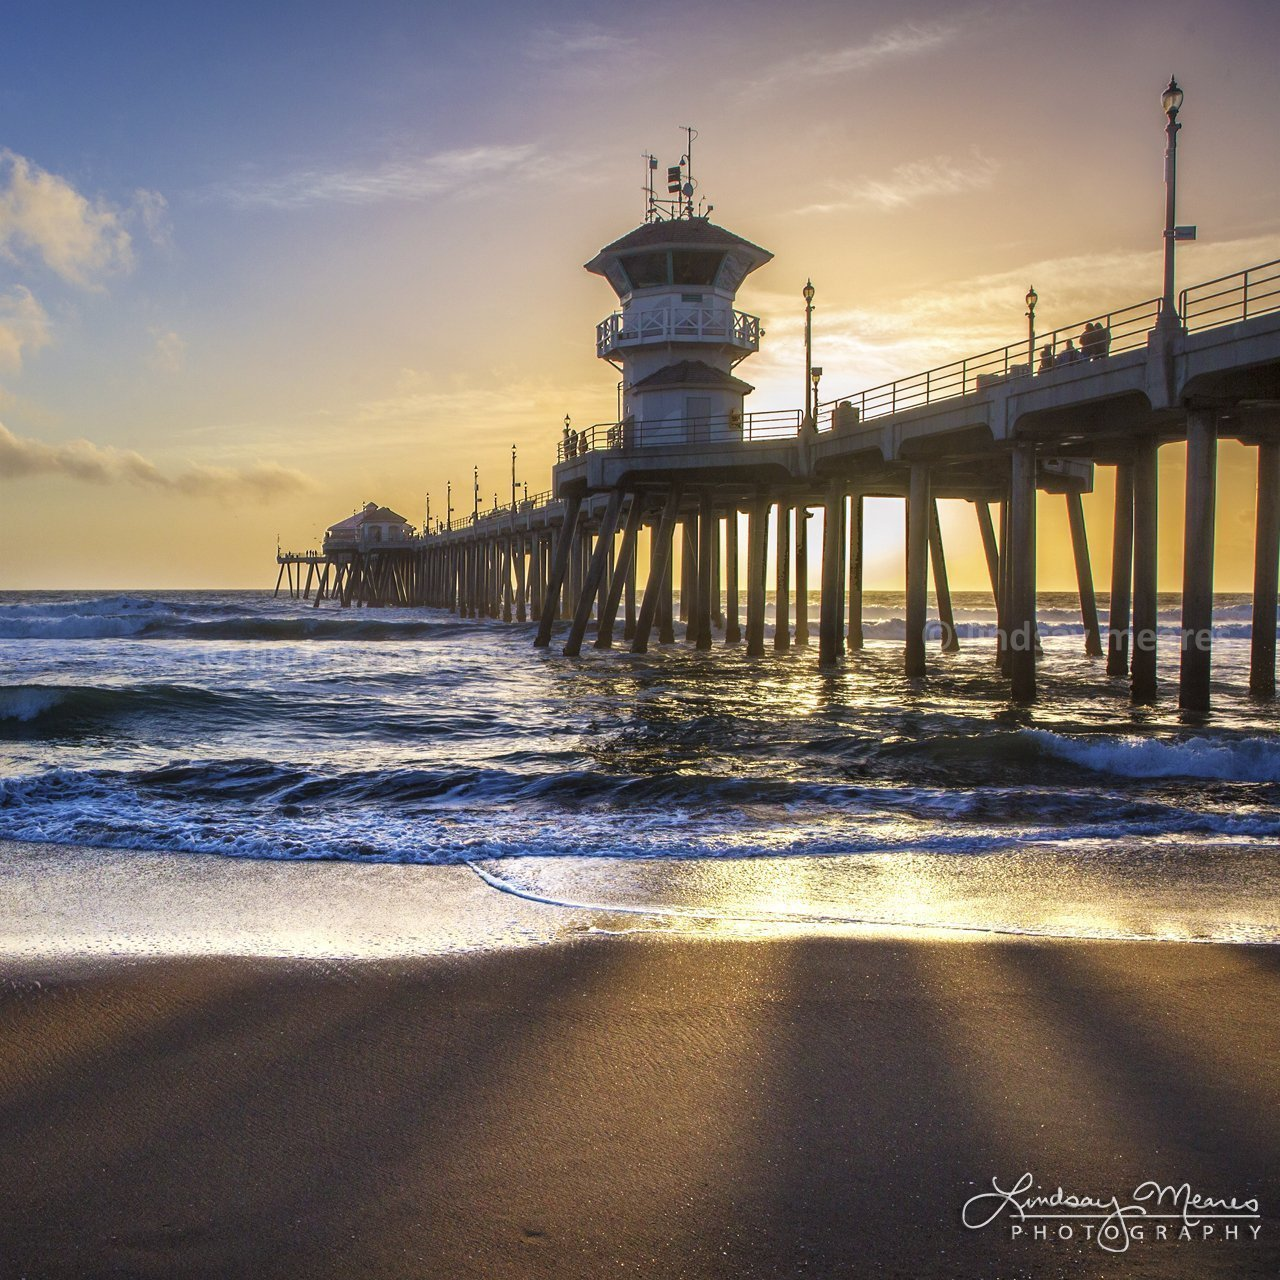 Amazon Com Sunbeam Pier By Travlin Photography Huntington Beach Pier Square Photo Multiple Sizes 5x5 To 24x24 Handmade